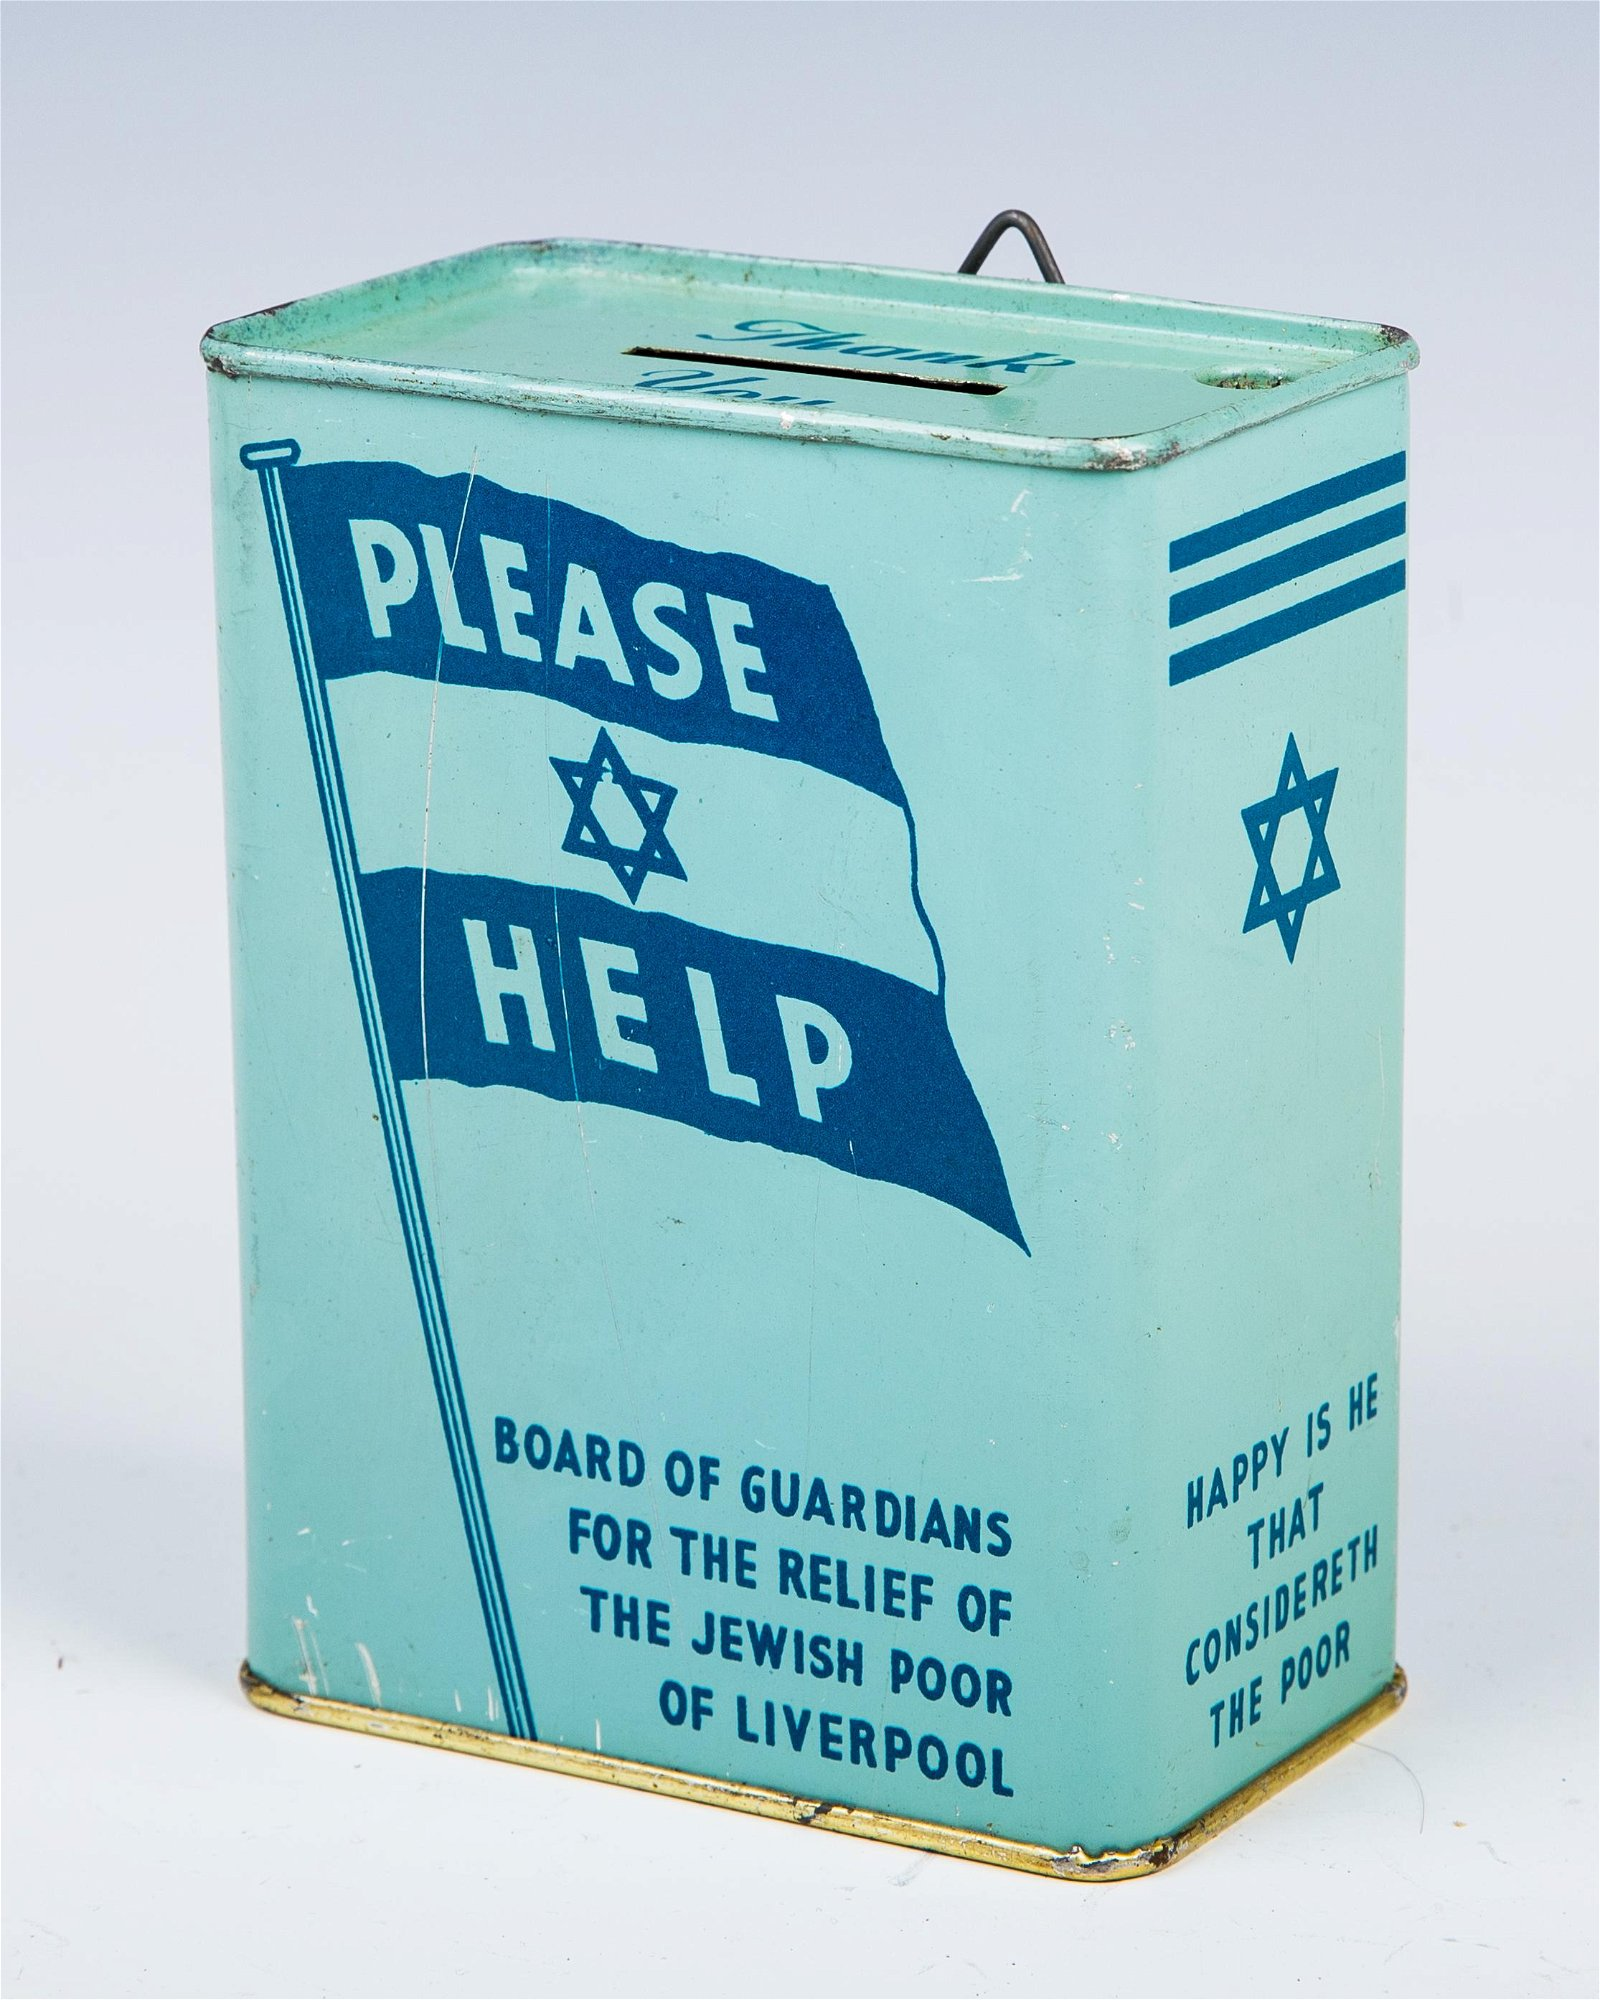 AN EARLY TIN CHARITY CONTAINER. Liverpool, c. 1950.